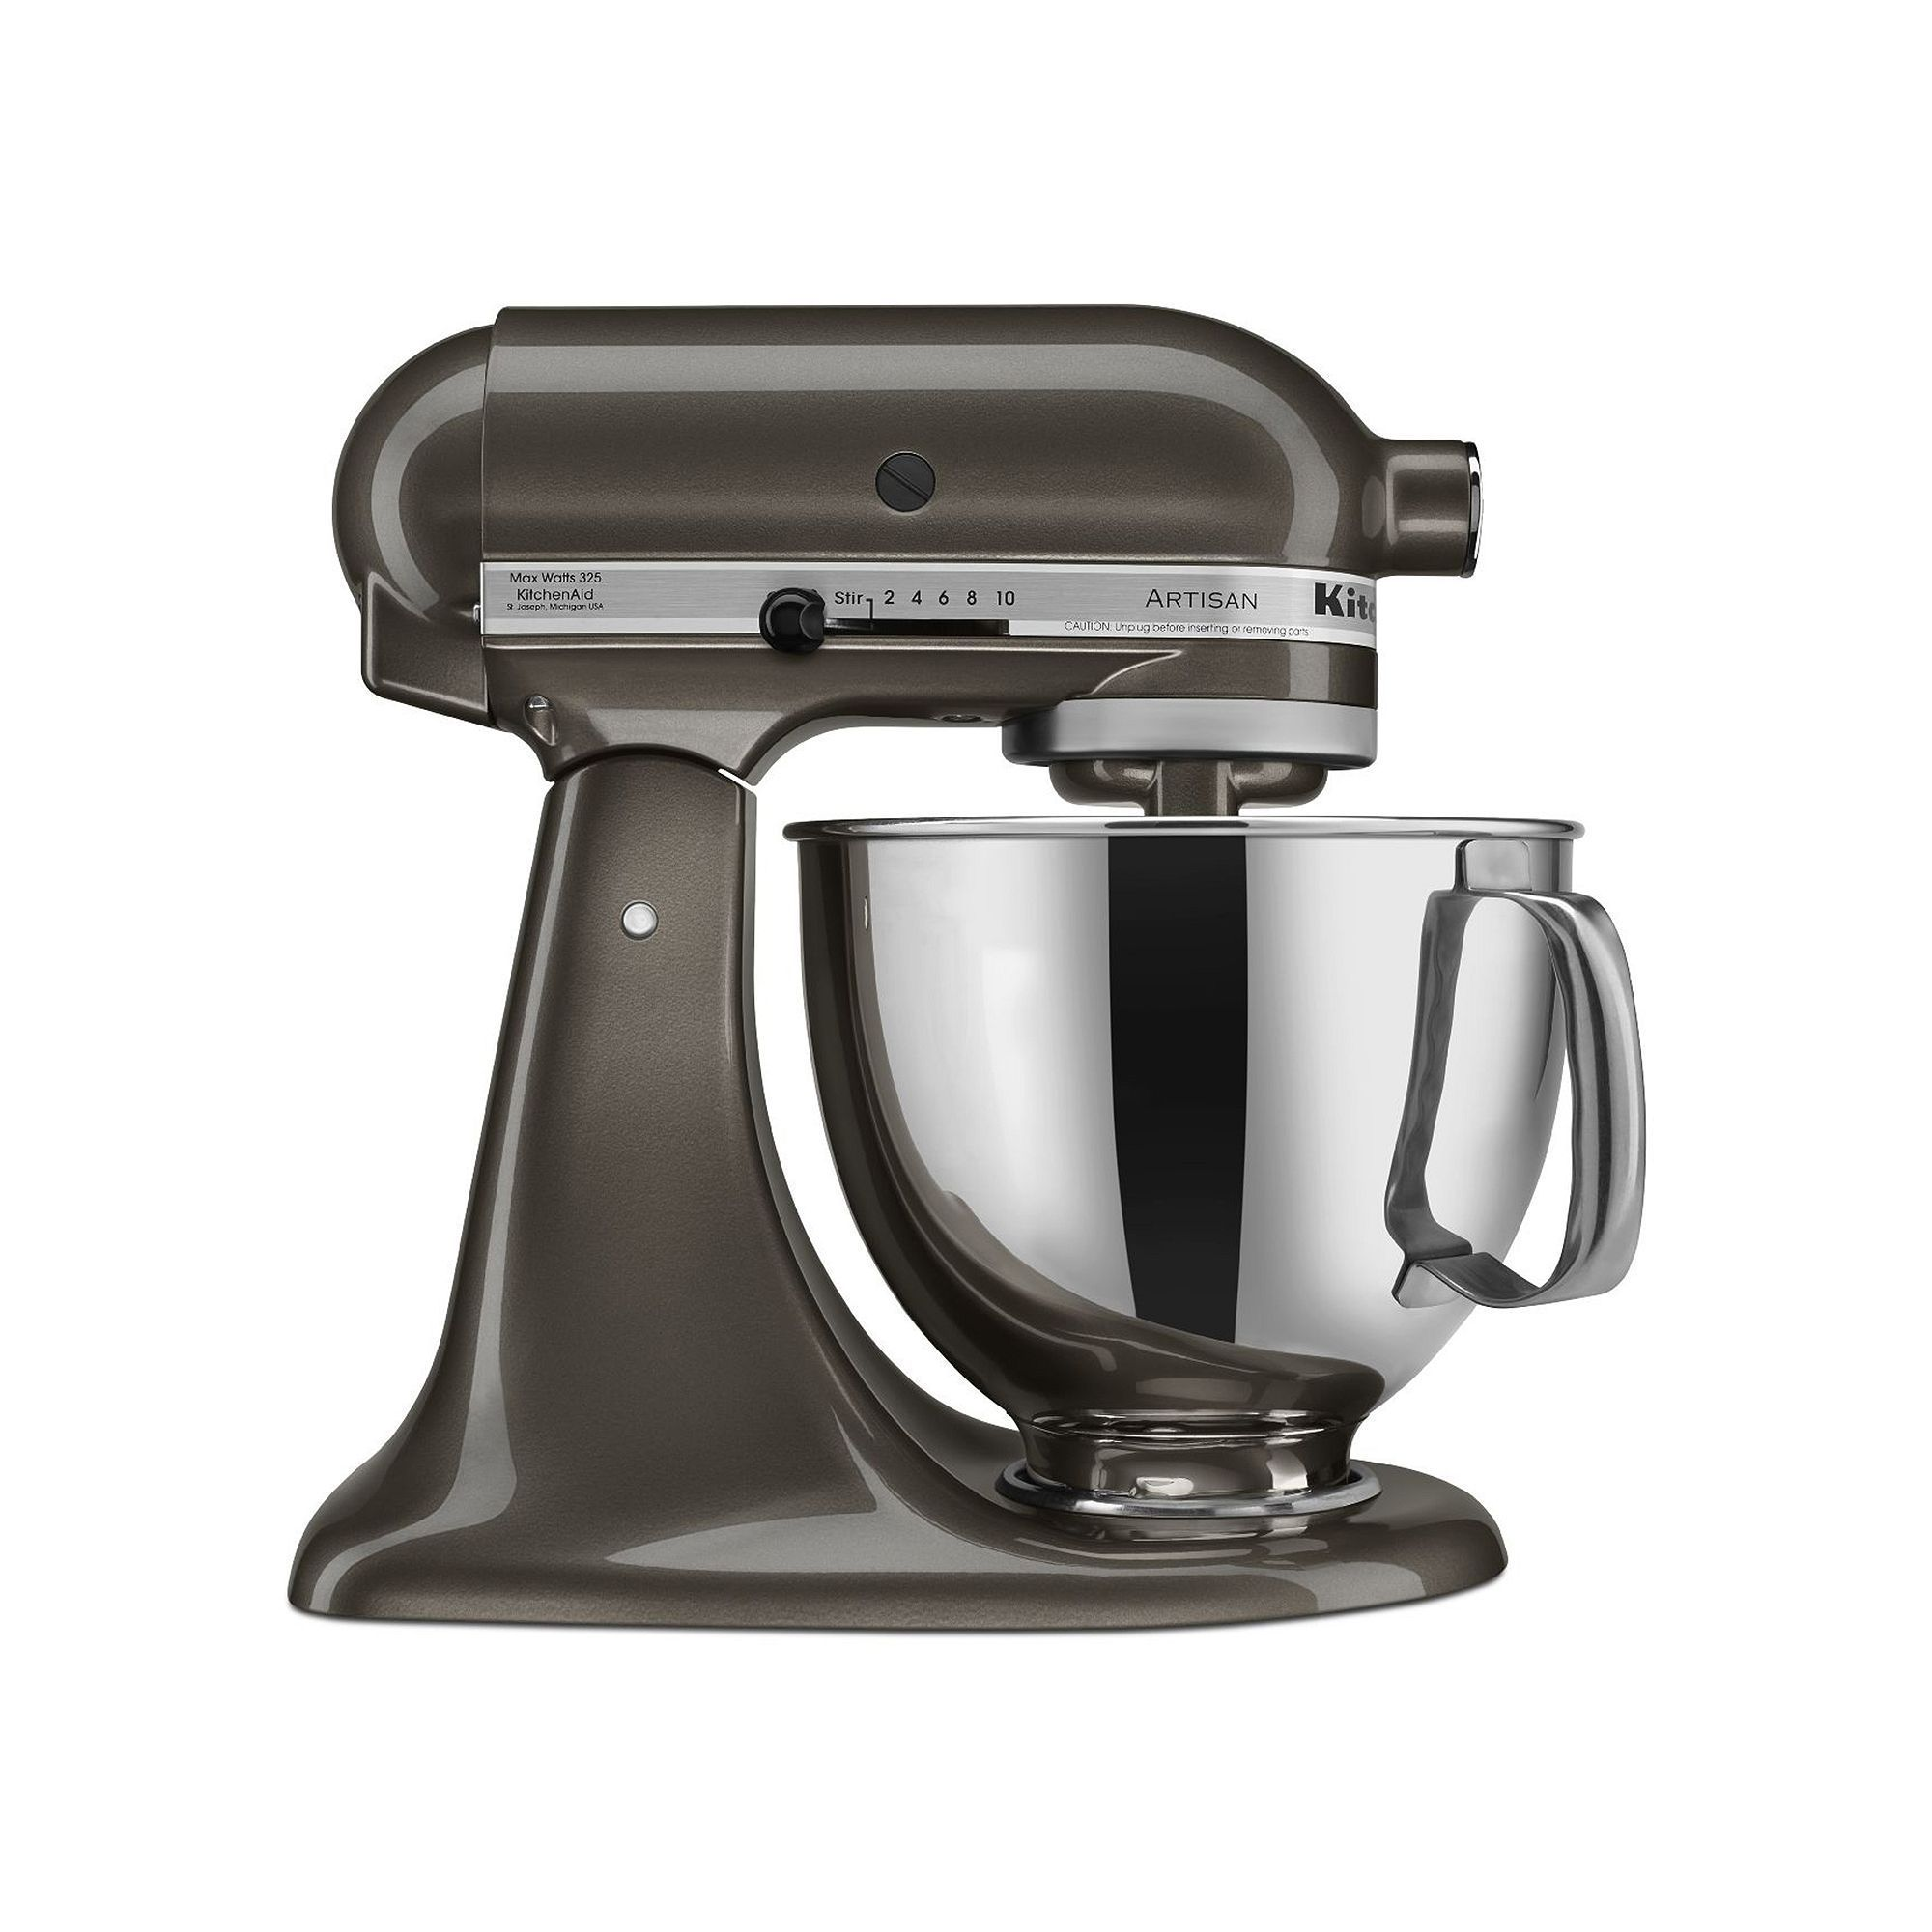 Kitchenaid Ksm150ps Artisan 5 Qt Stand Mixer Multicolor